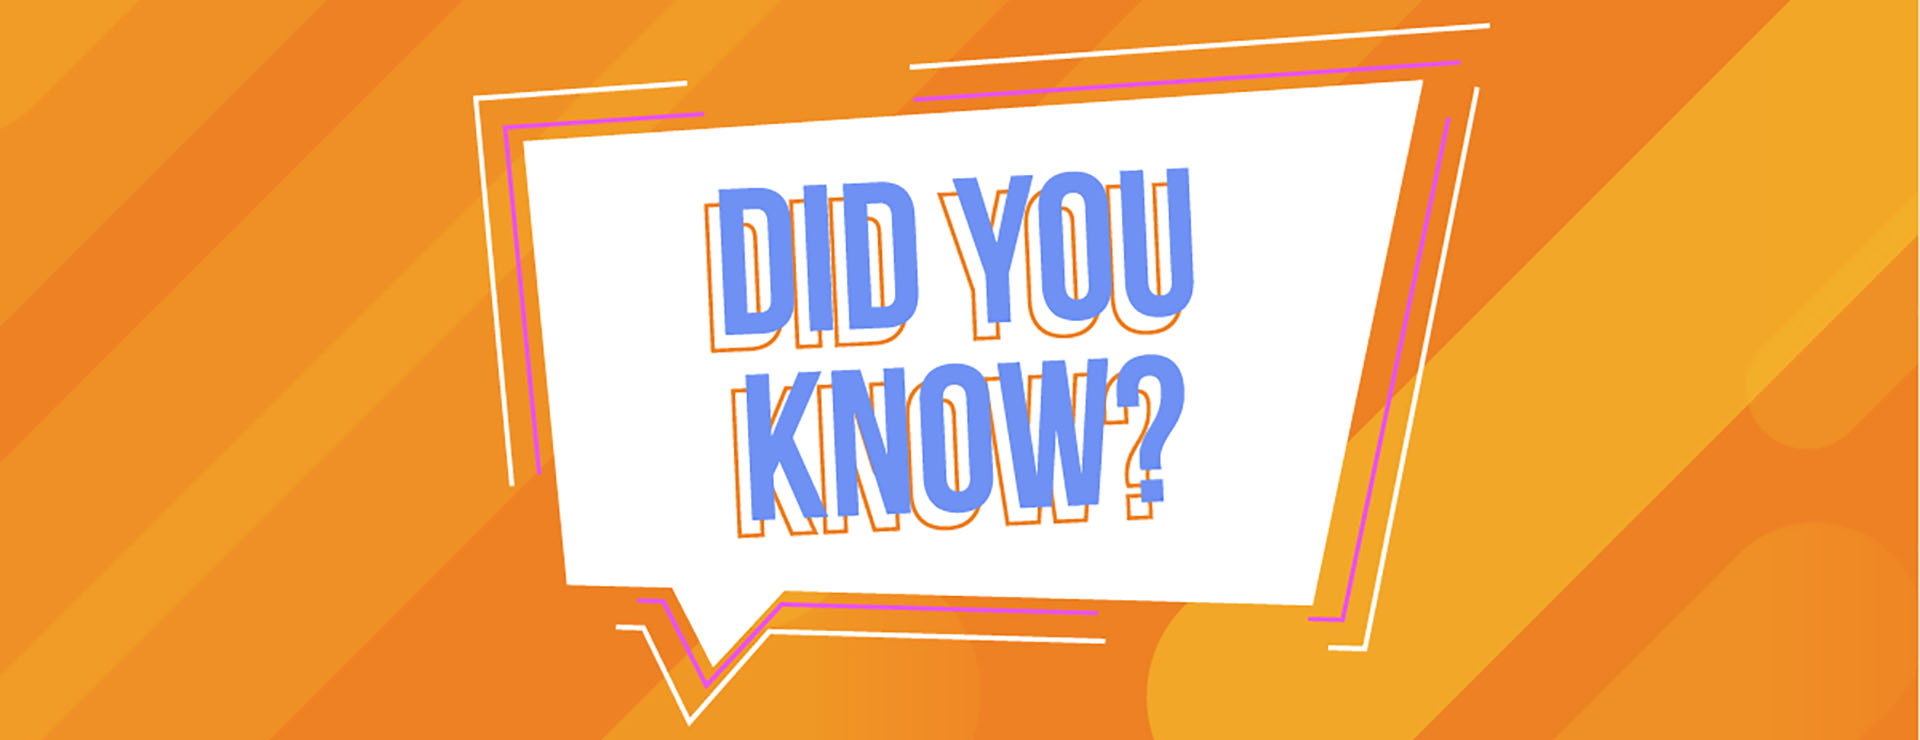 Did You Know - Resources - The Maynard 4 Foundation - 2